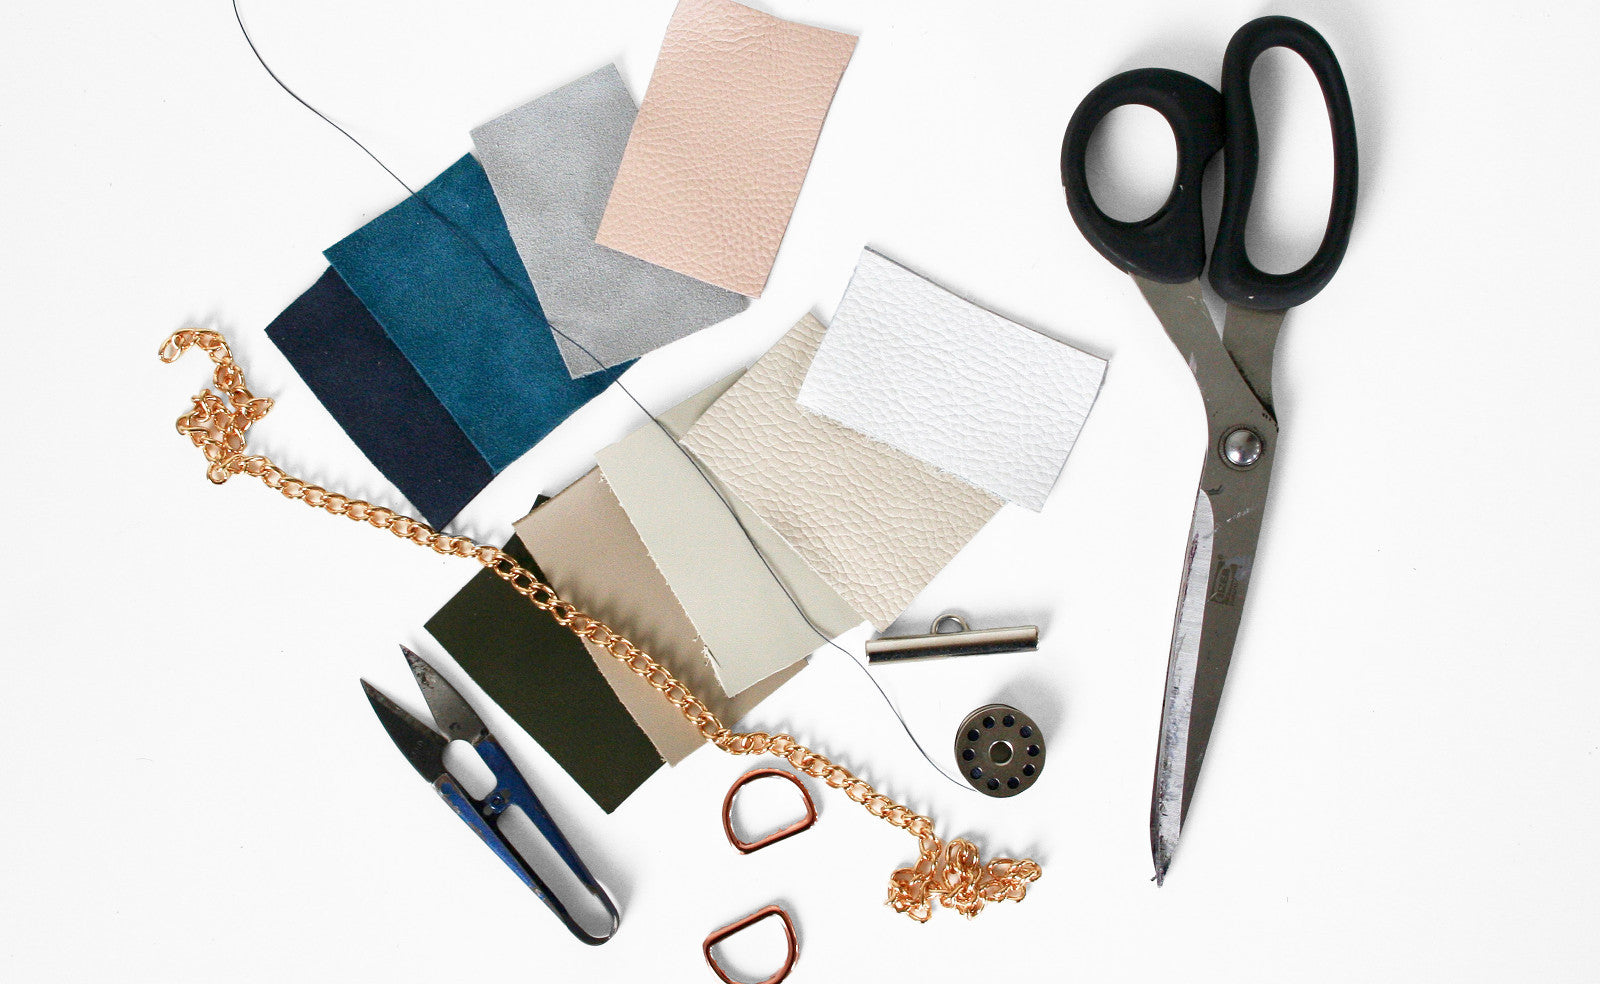 Baia Bags Bepsoke Tools Creating and Designing with Leather Samples. Made in England